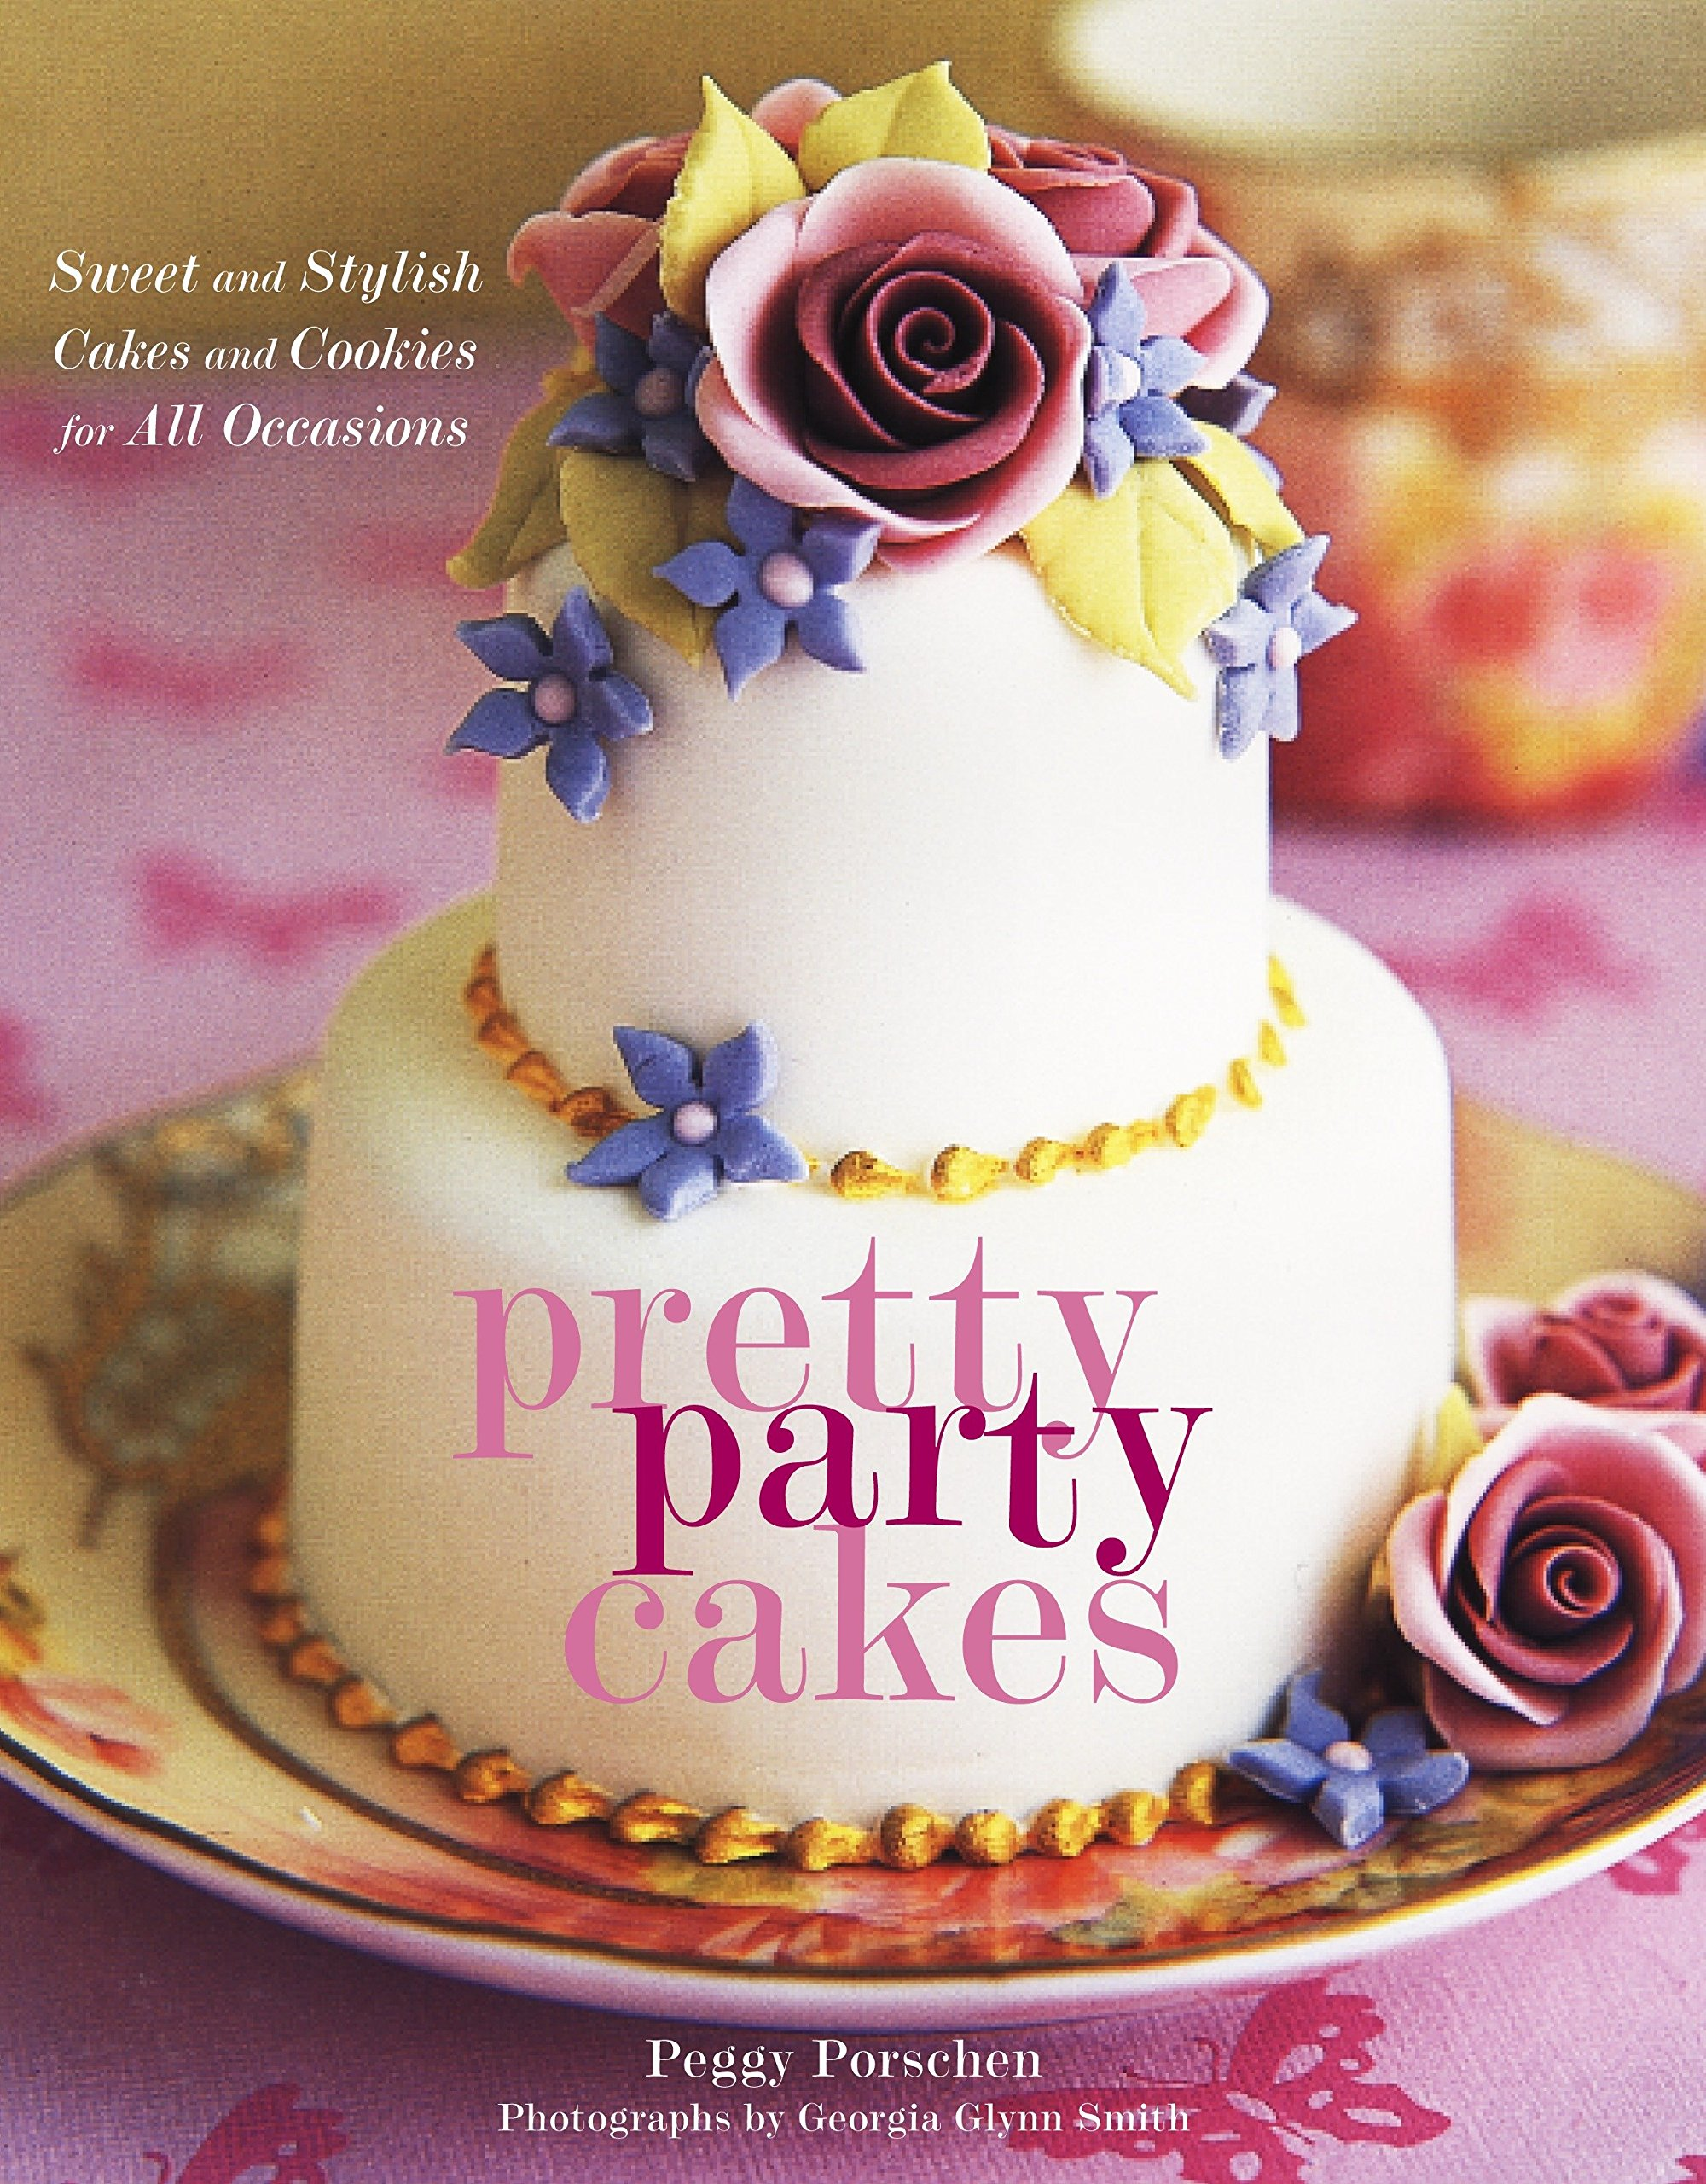 pretty party cakes sweet and stylish cakes and cookies for all